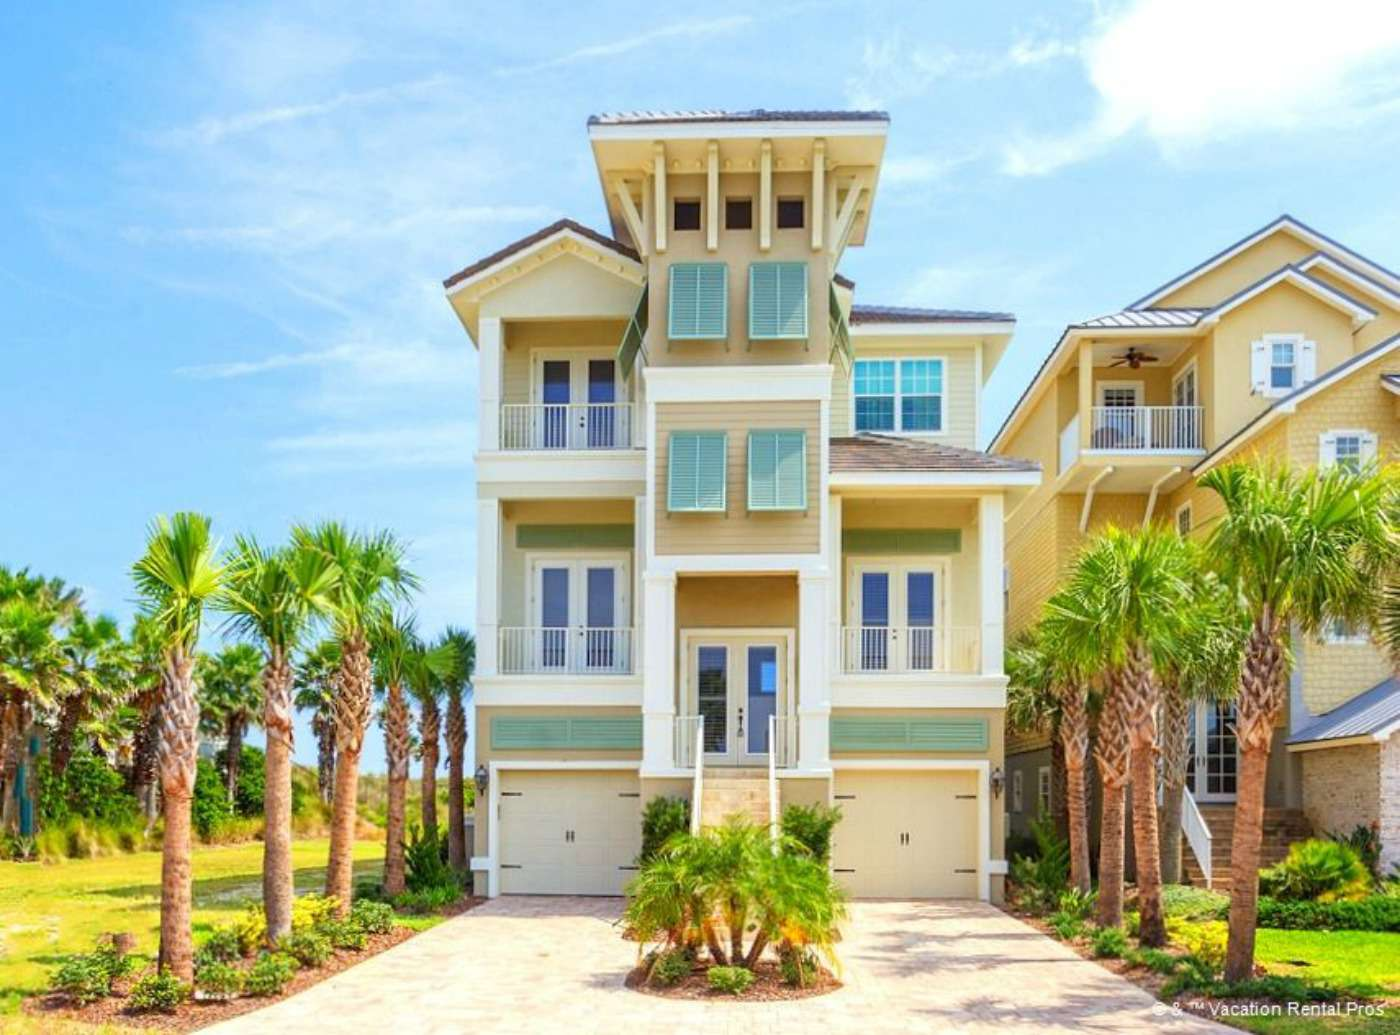 10 Best Cheap Florida Family Vacations 2021